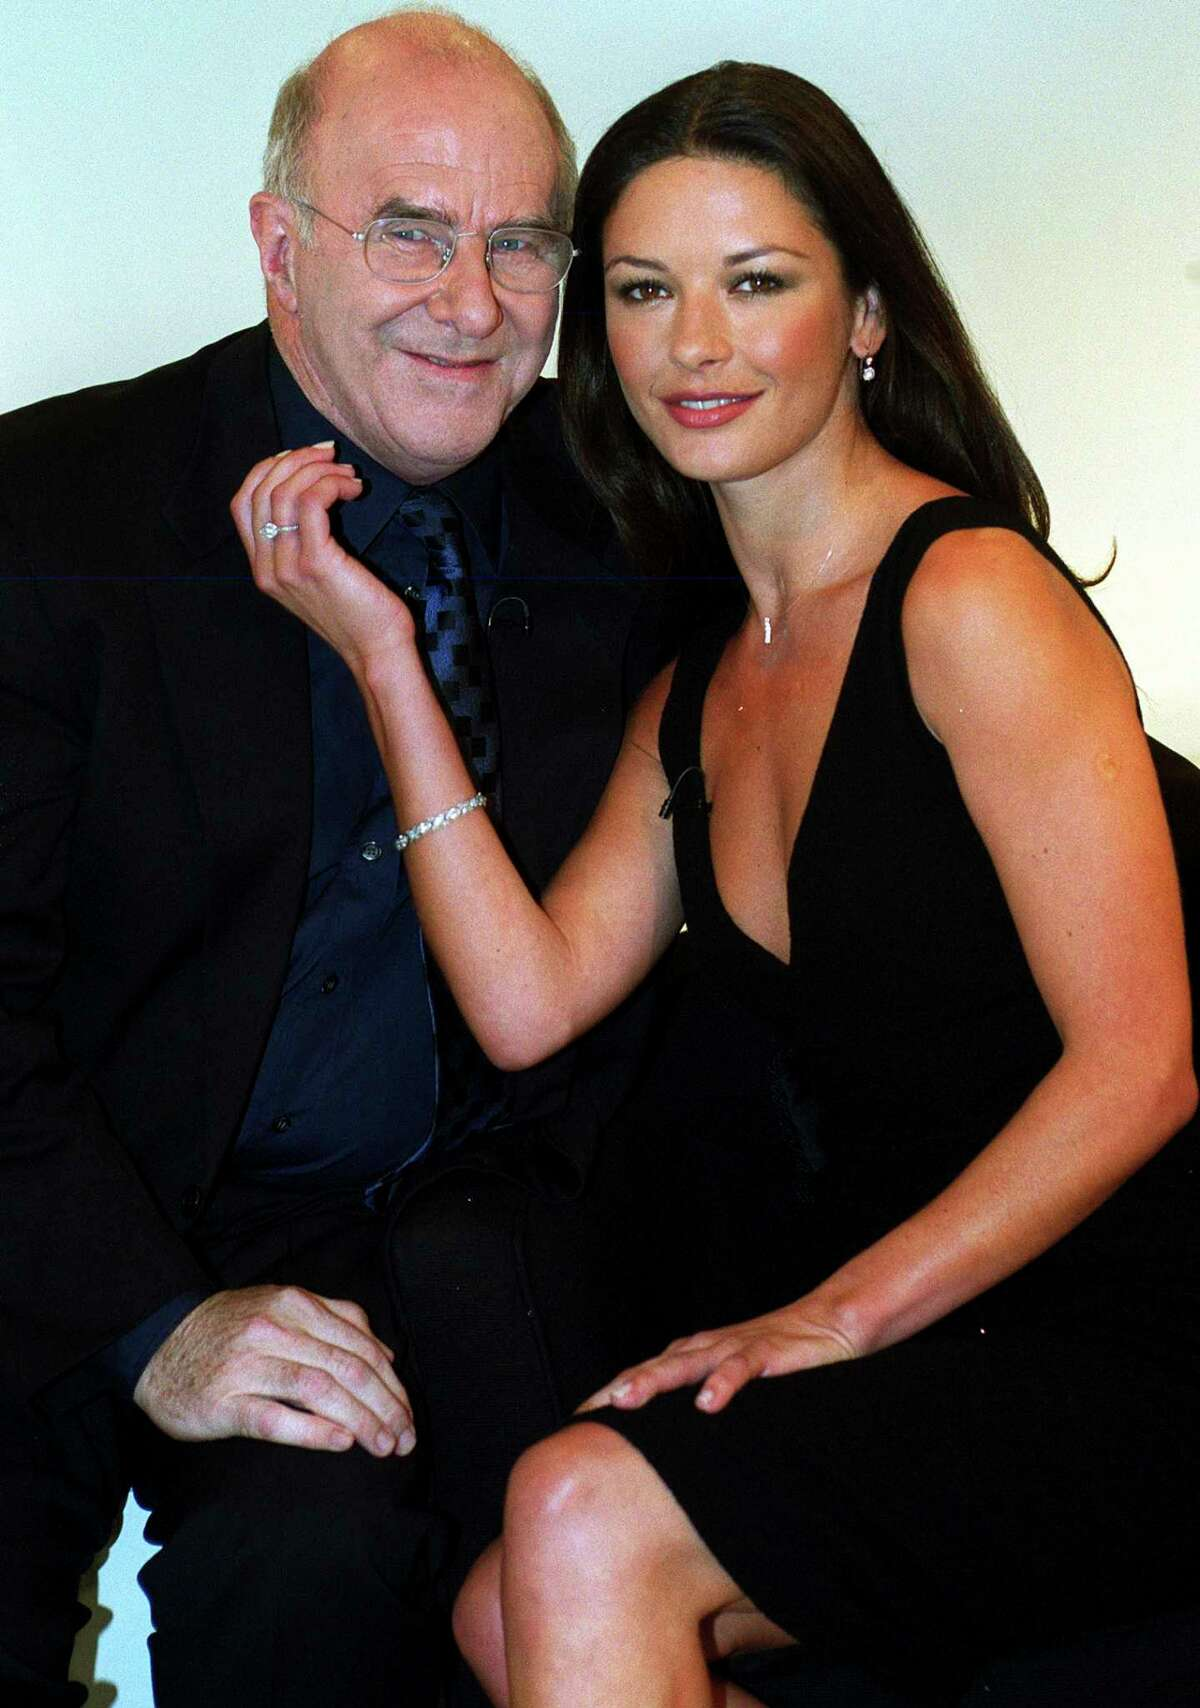 FILE - In this June 27 1999 file photo, actress Catherine Zeta-Jones poses for a photo with broadcaster Clive James for